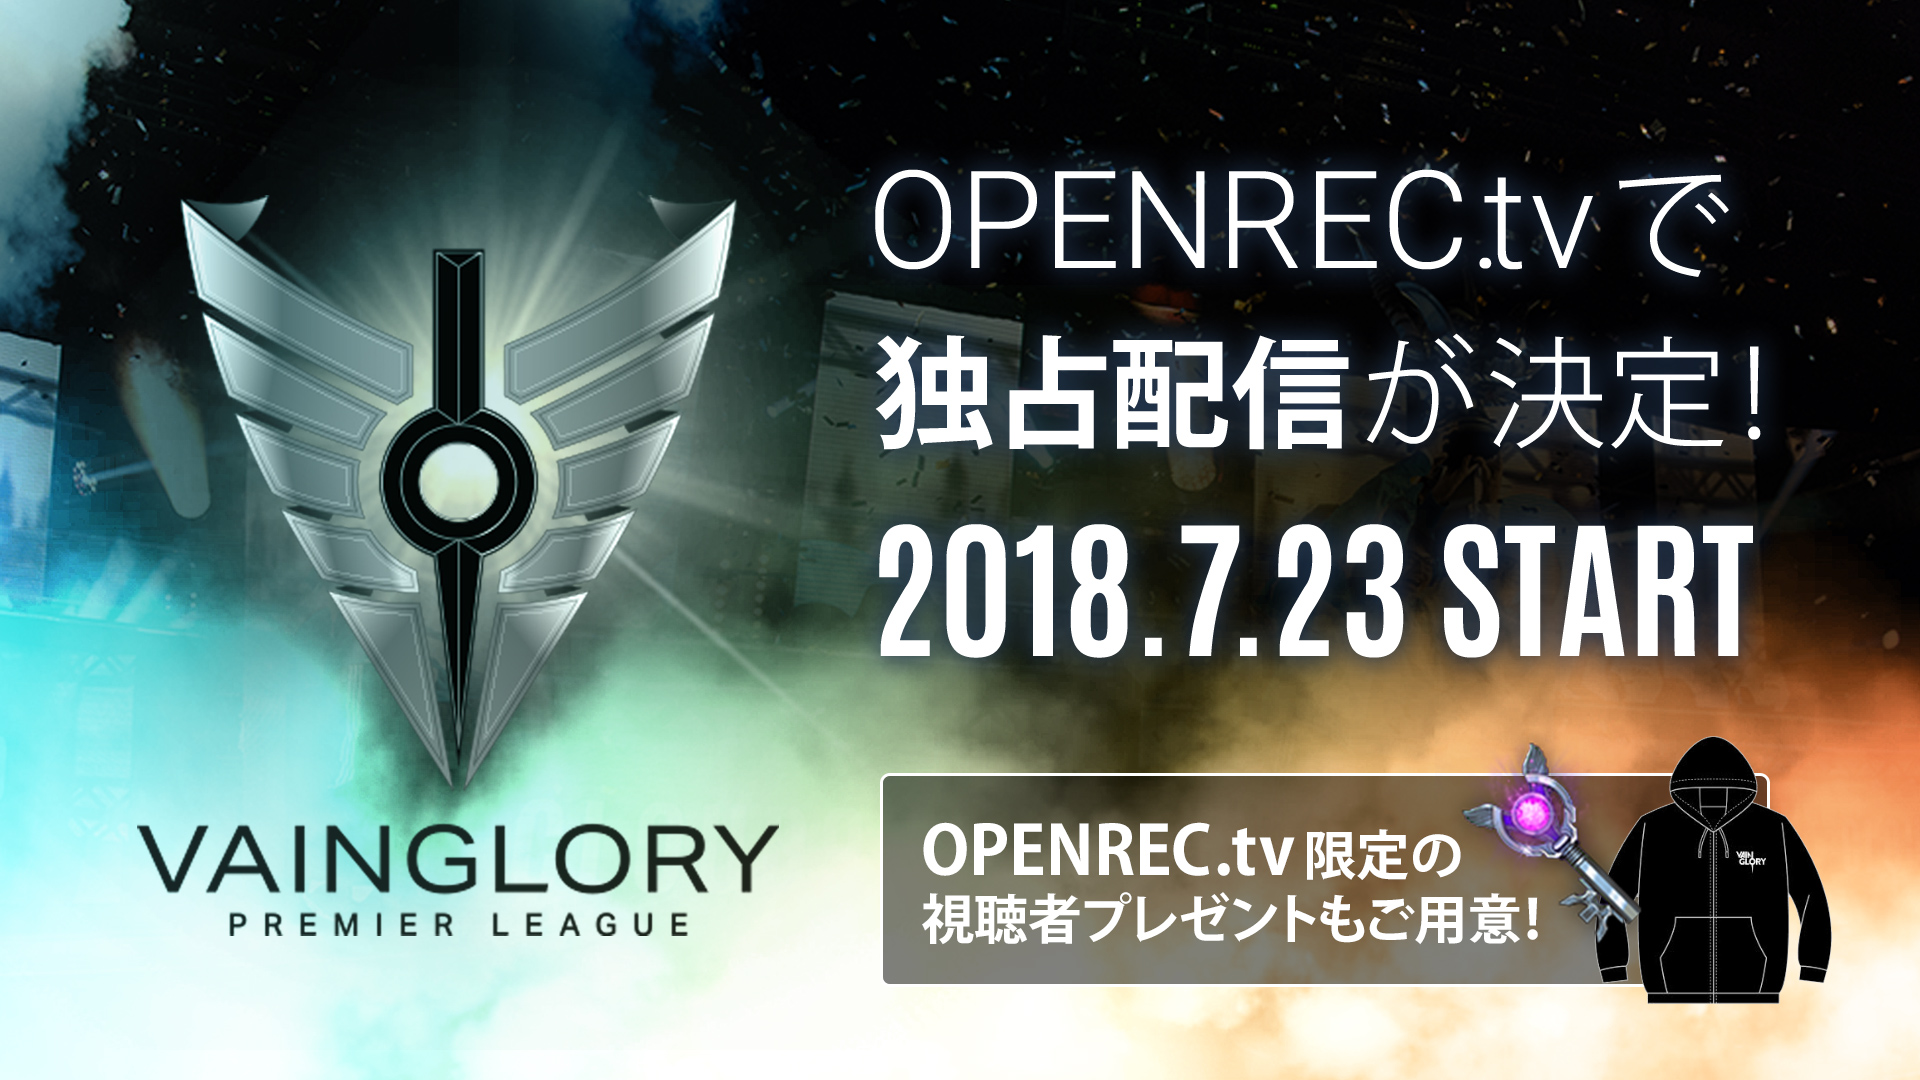 「OPENREC.tv」にて、「Vainglory」東アジアサーバーを対象とした8チームのリーグ戦「Vainglory Premier League East Asia」公式生放送が決定!~オリジナル実況解説で生中継!視聴者プレゼントキャンペーンも実施~